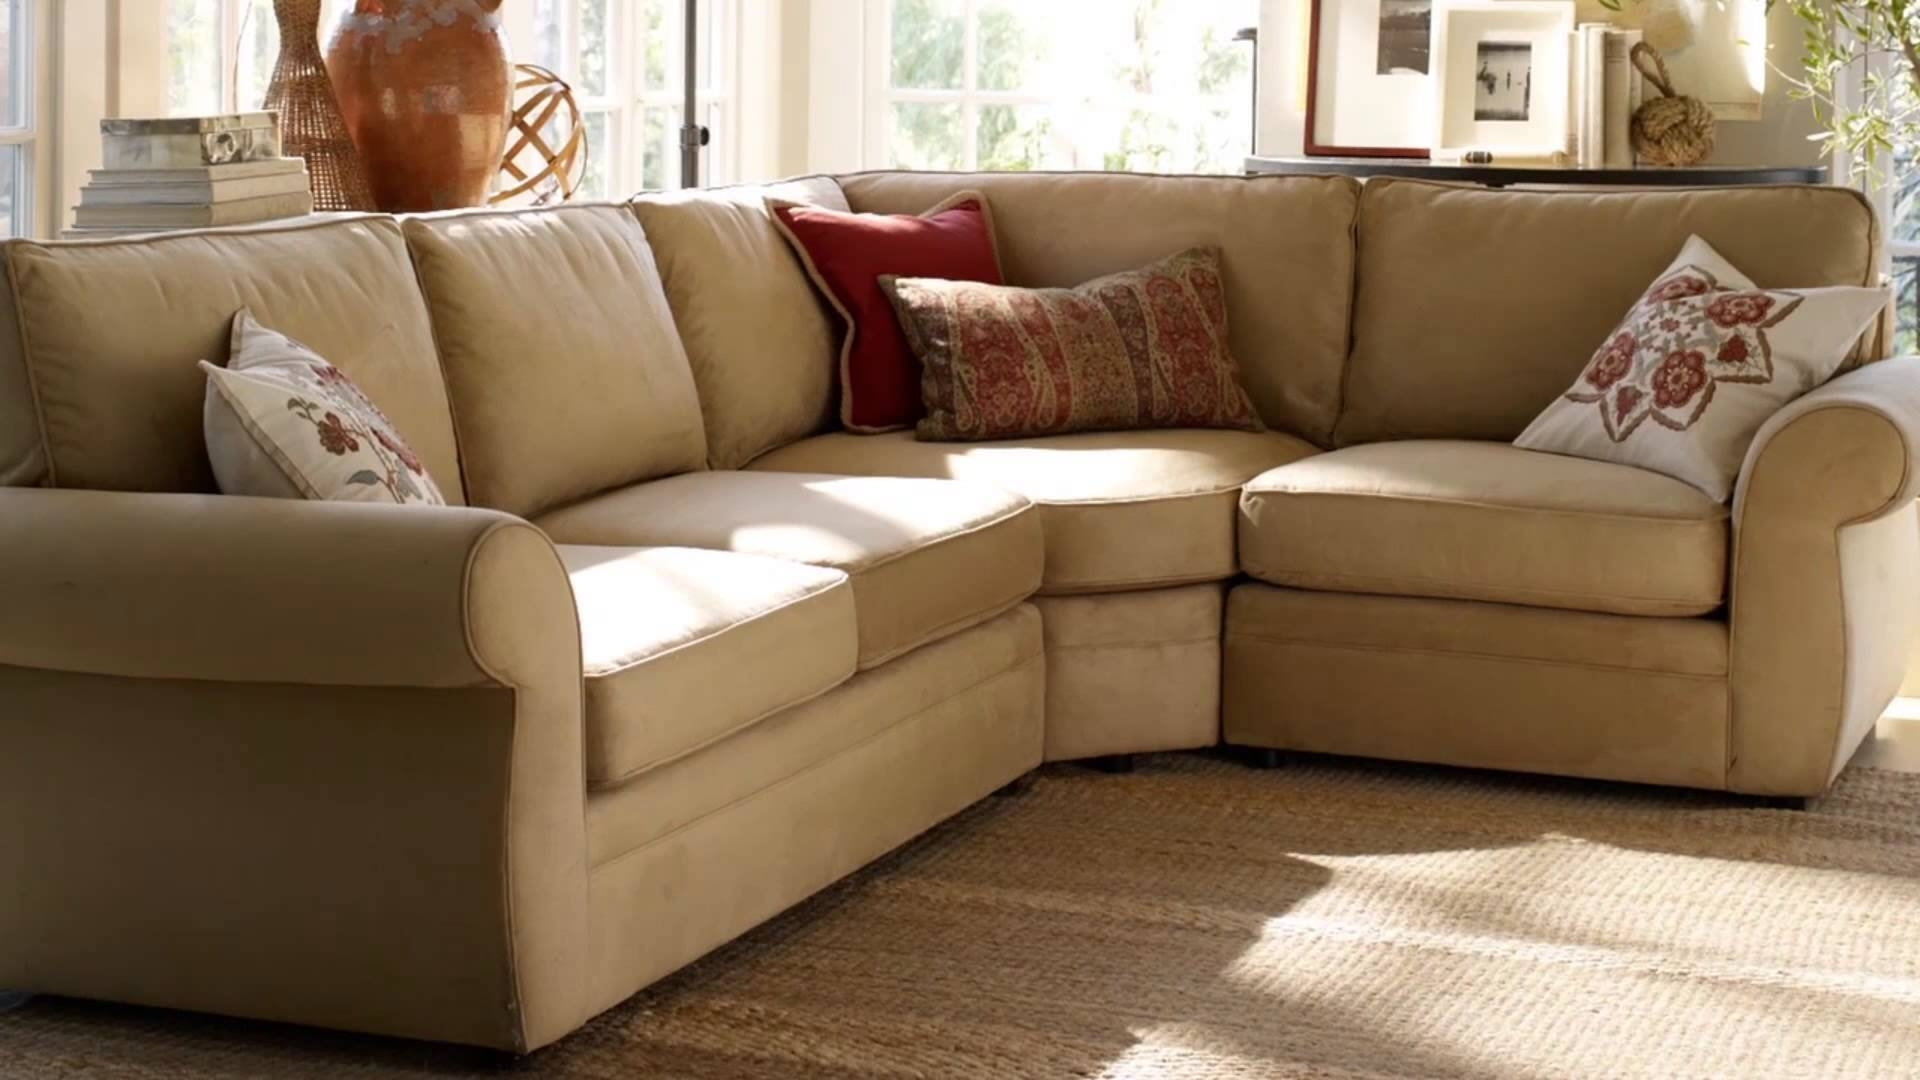 The best pottery barn pearce sectional sofas for Pottery barn pb sectional sofa